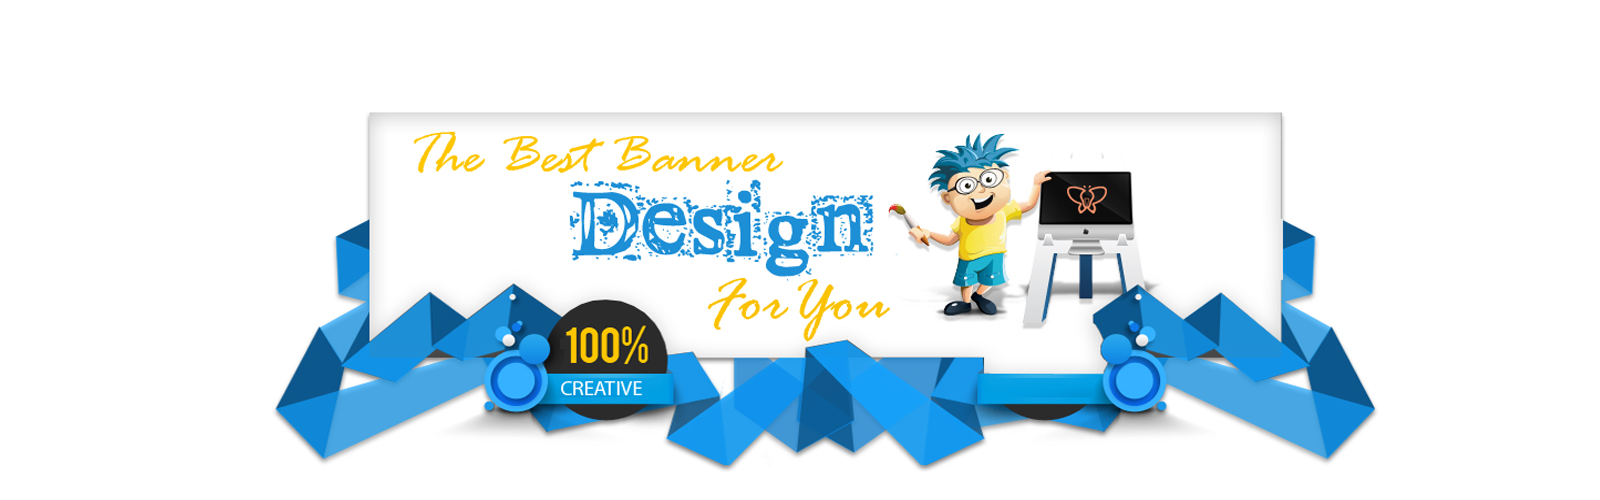 Banner design pinterest. Youtube clipart creative